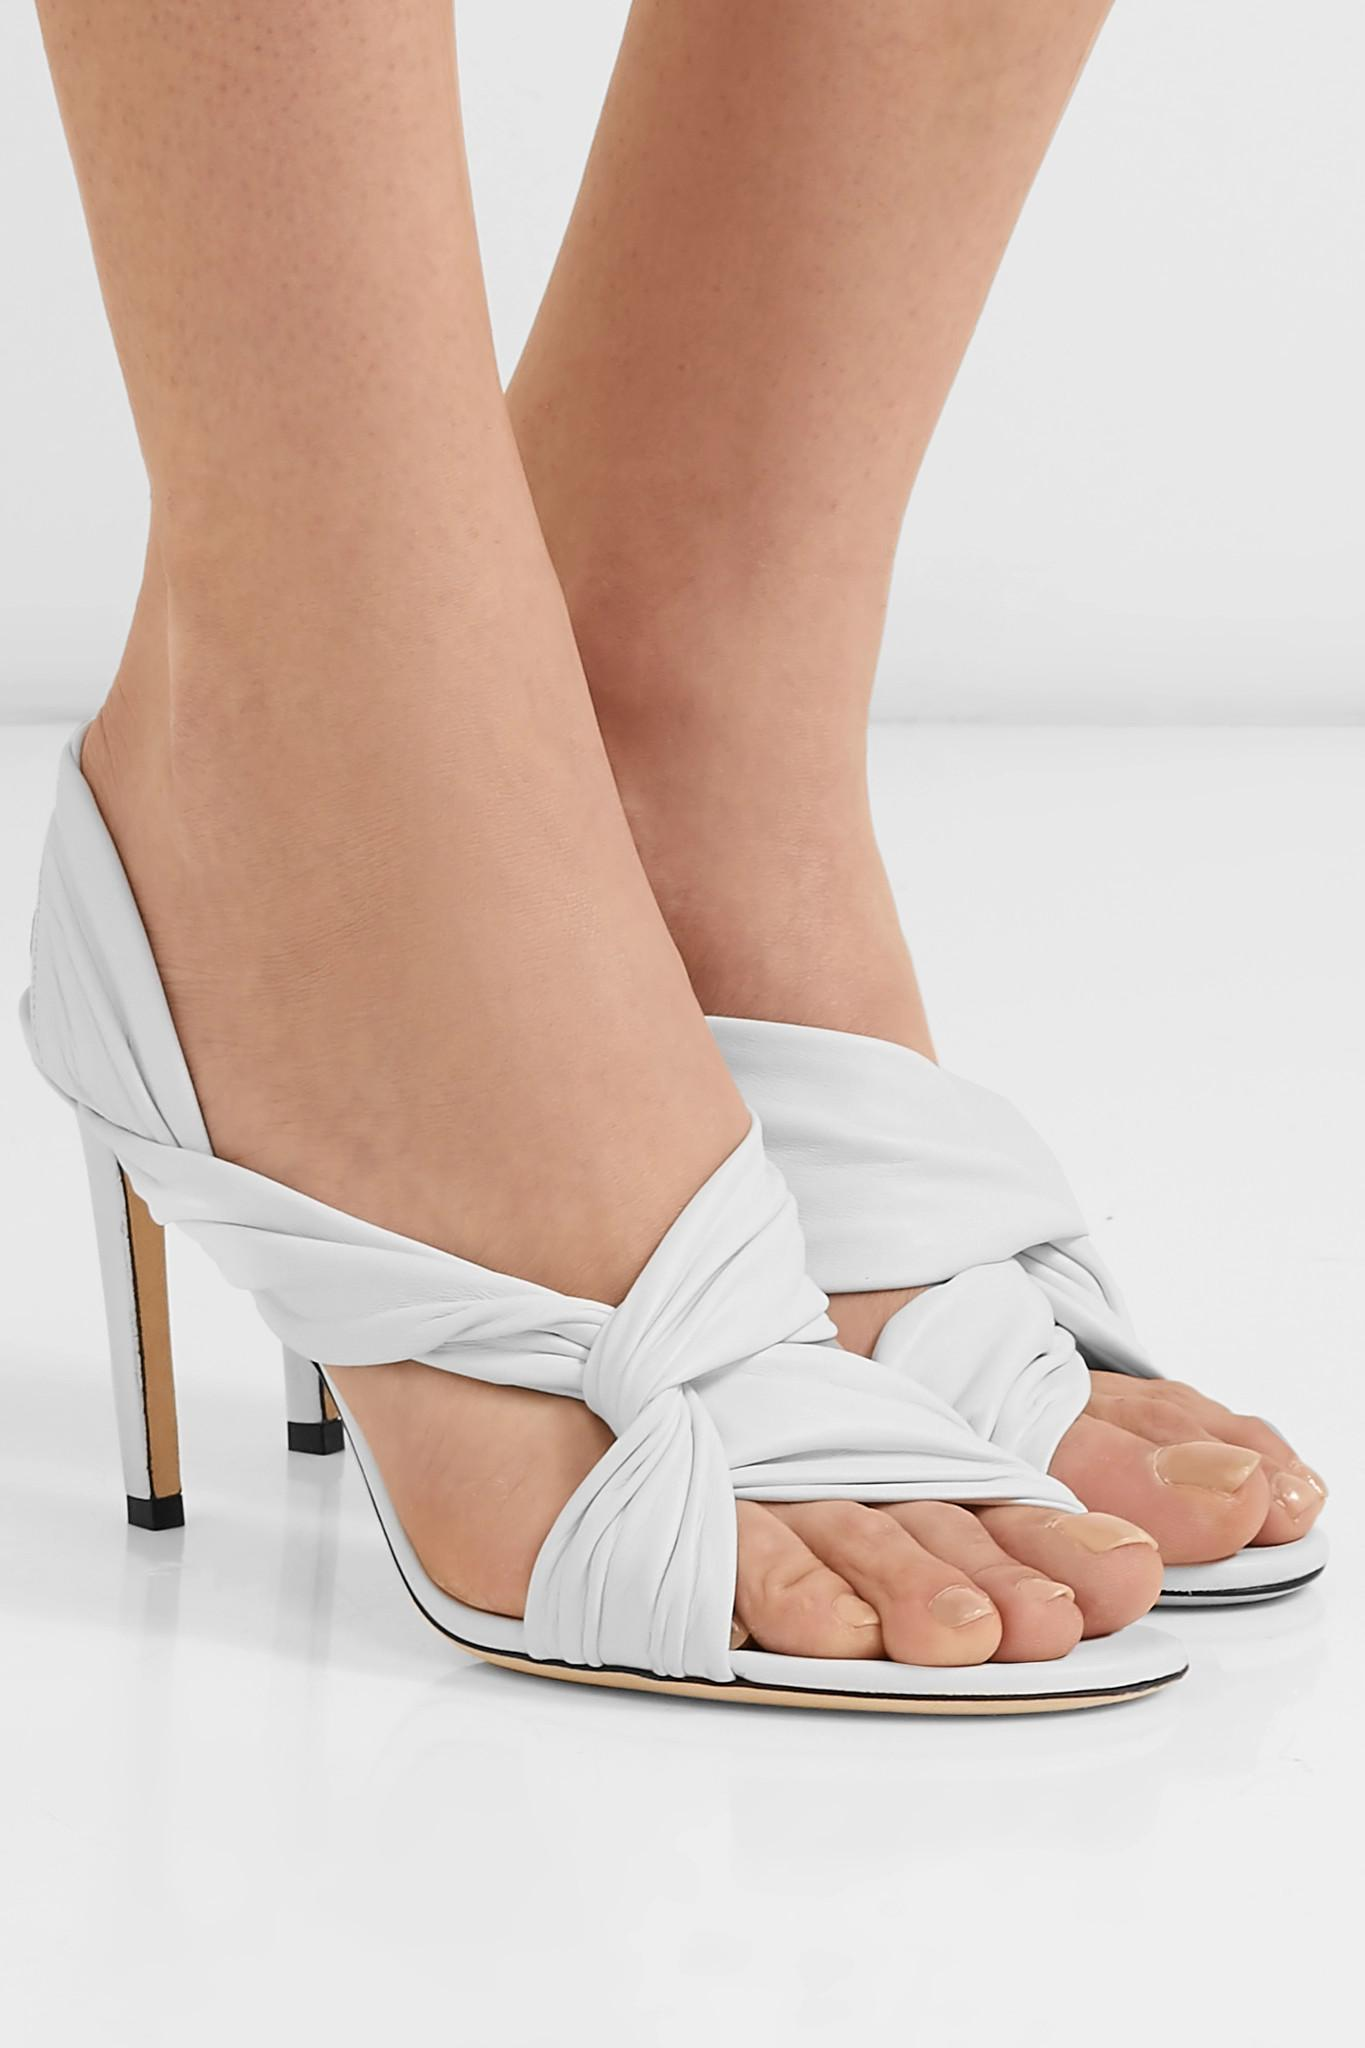 739e8340afb7 Jimmy Choo - White Leila 85 Knotted Leather Slingback Sandals - Lyst. View  fullscreen